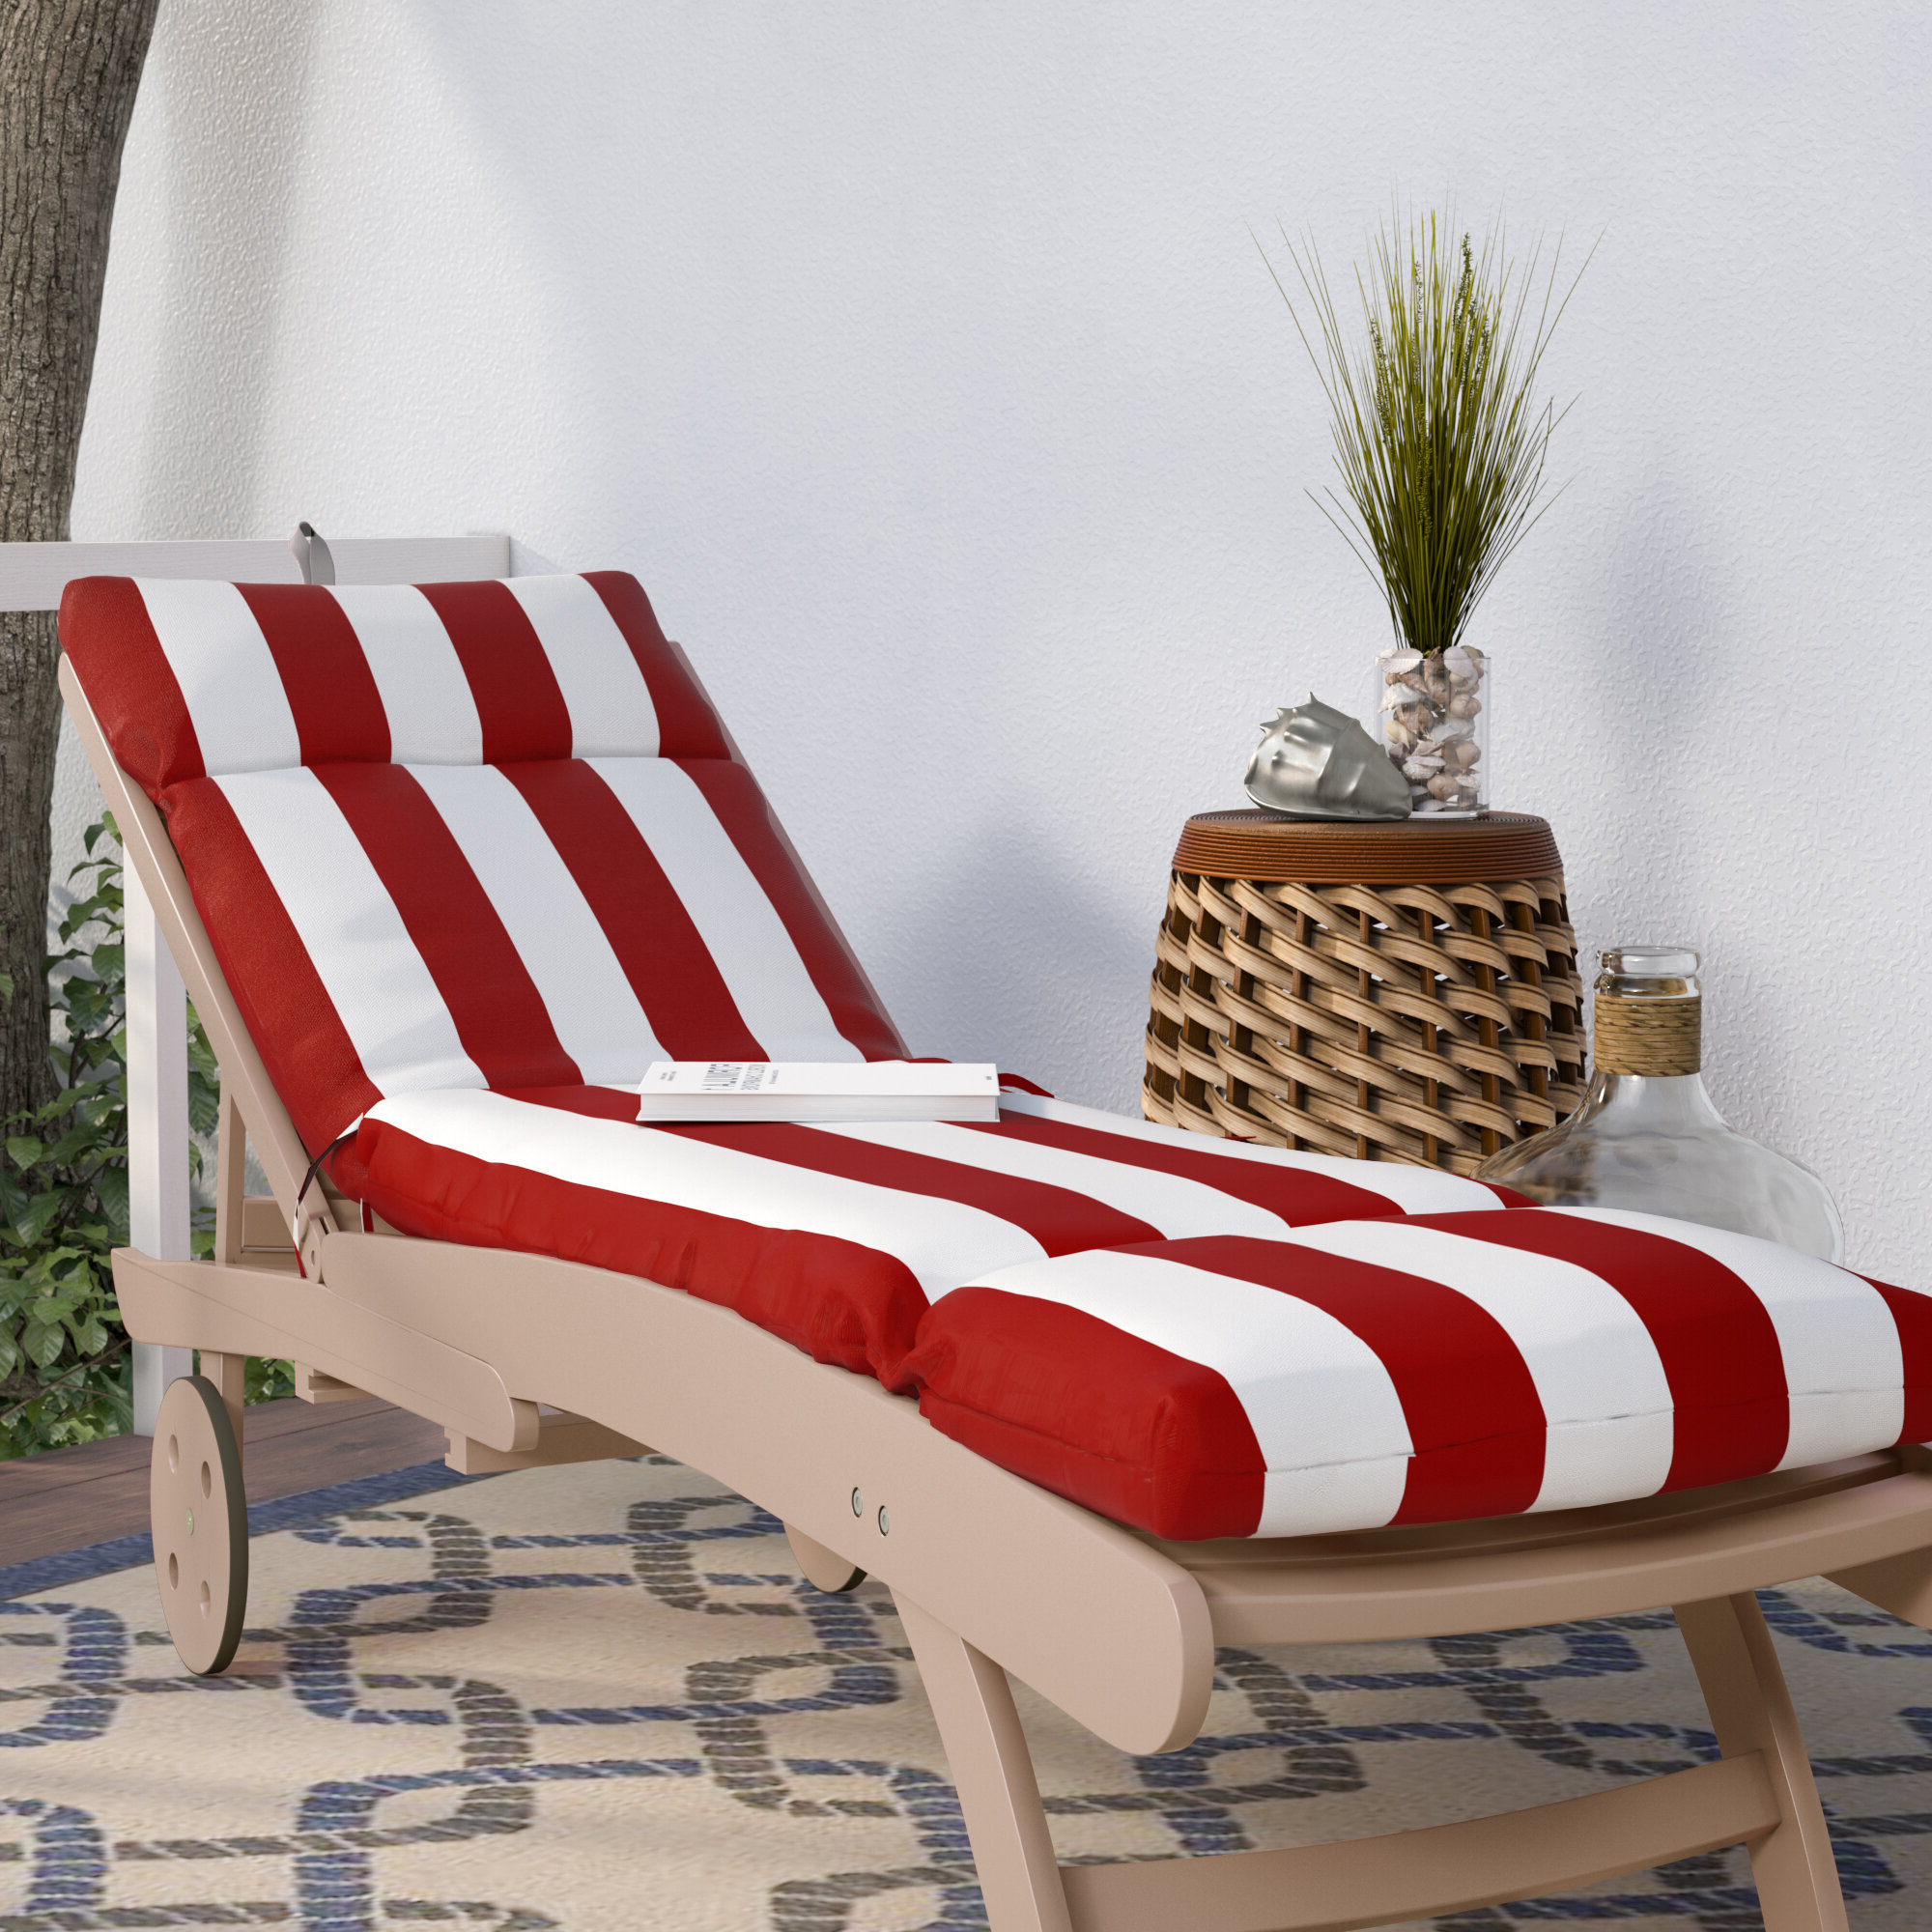 Striped Outdoor Chaises With Umbrella With Most Current Striped Indoor/outdoor Chaise Lounge Cushion (View 3 of 25)